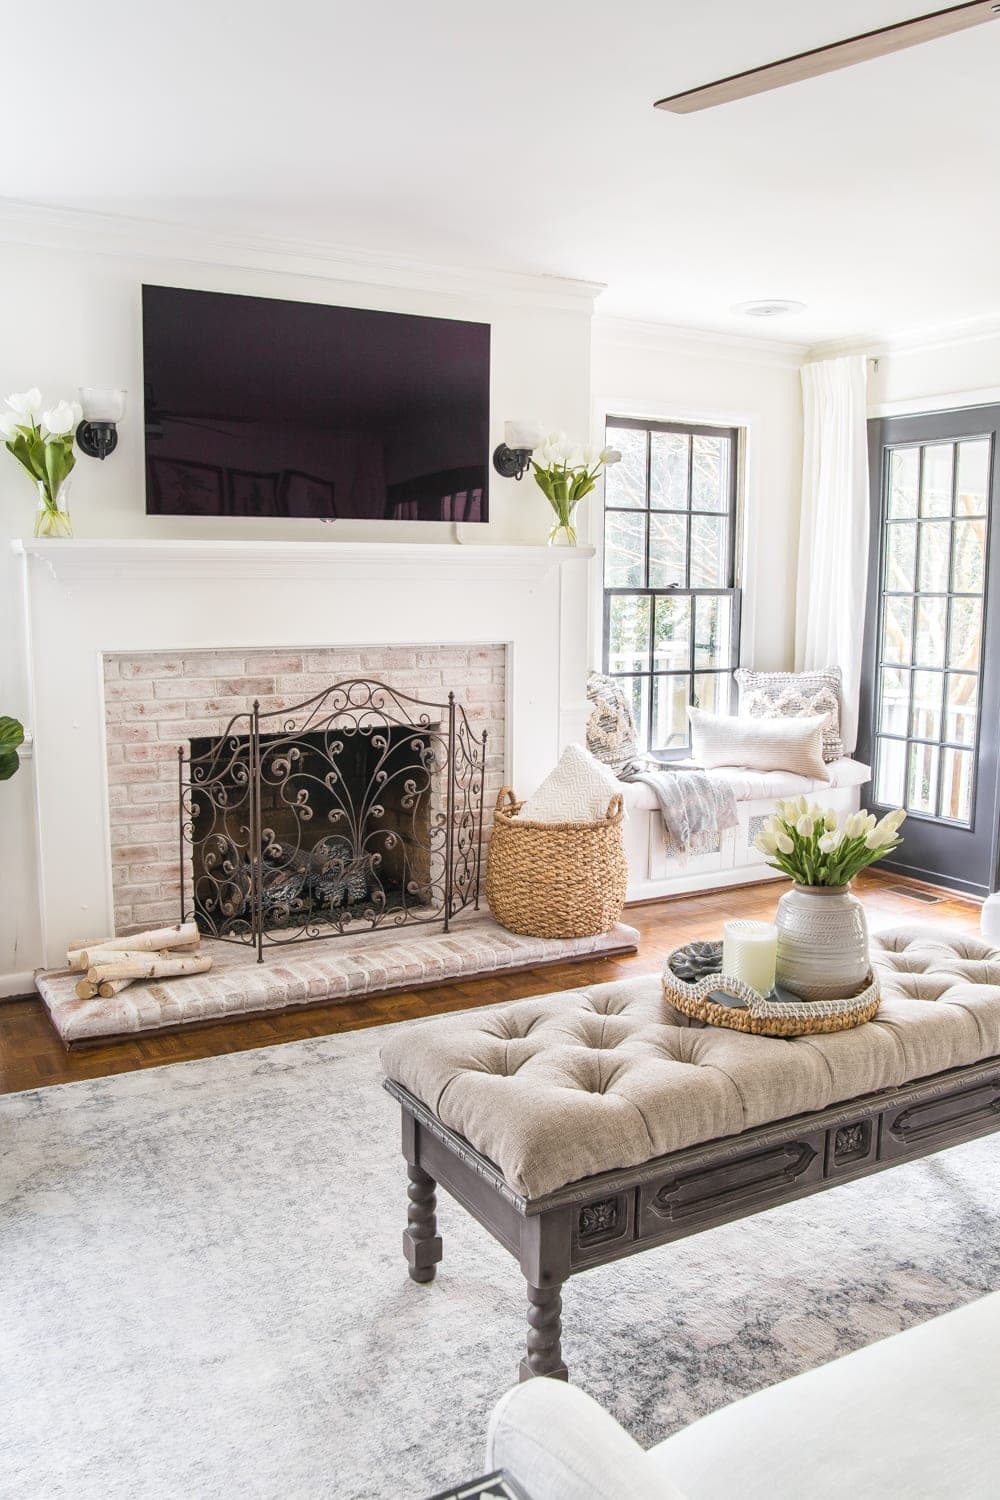 Simple Spring Home Tour | Neutral living room decorated with small floral touches for spring